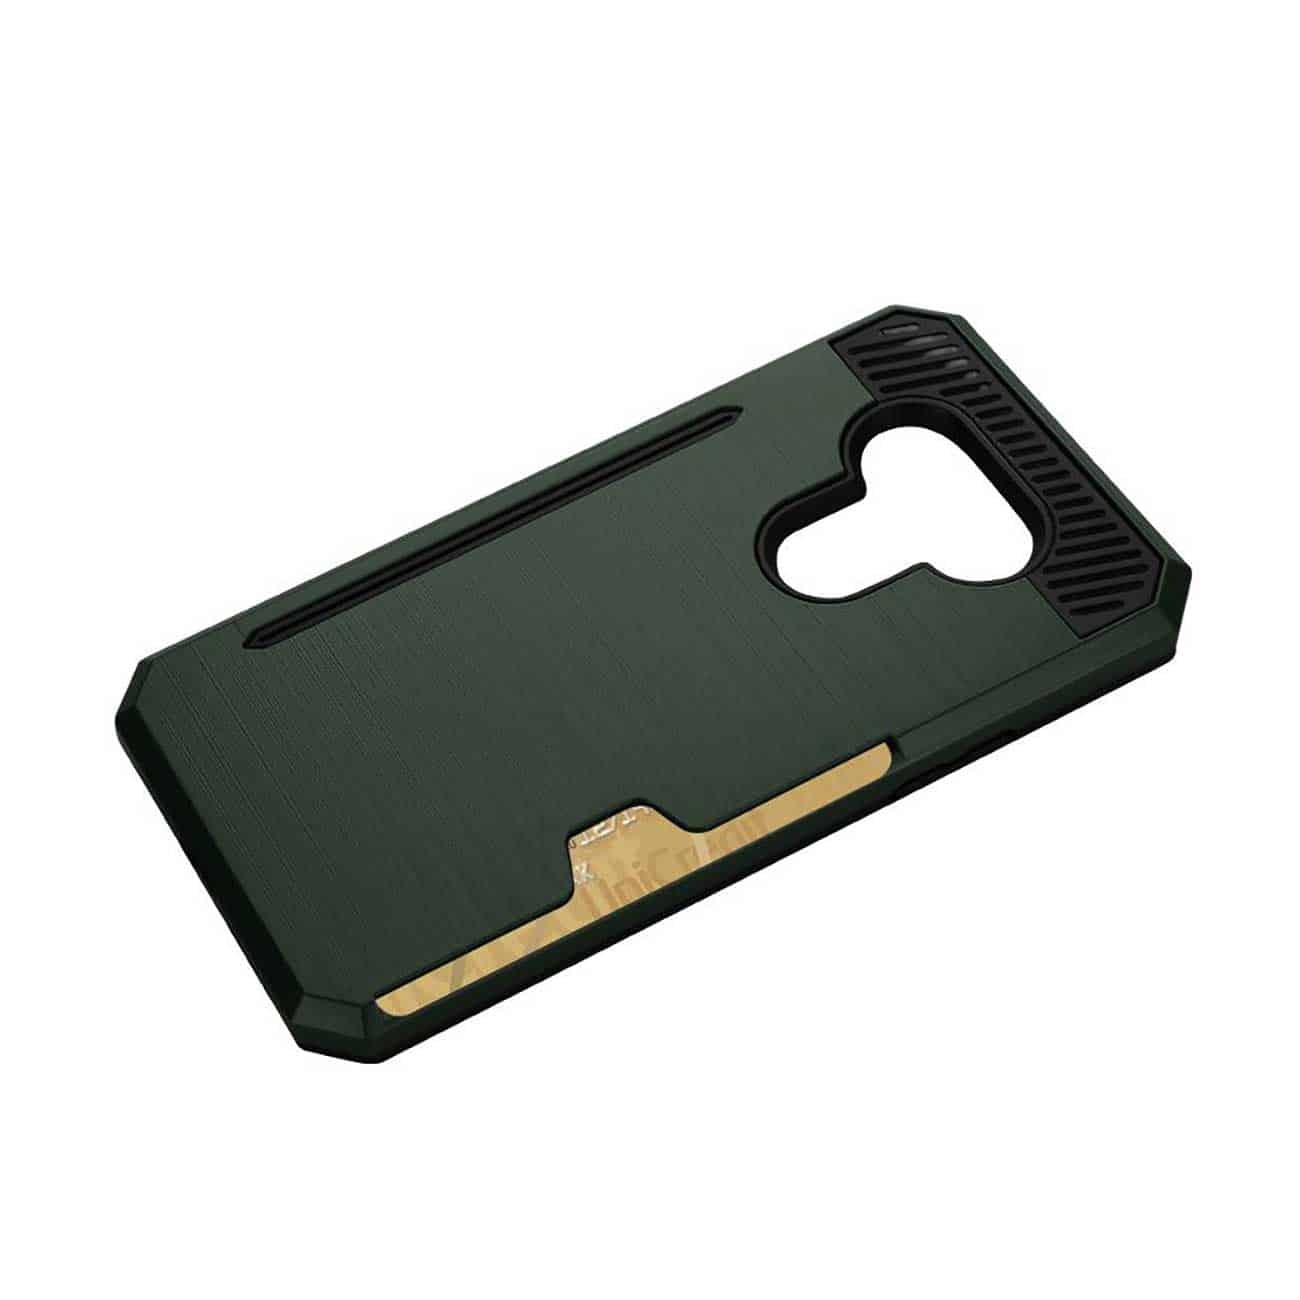 LG G5 SLIM ARMOR HYBRID CASE WITH CARD HOLDER IN GREEN